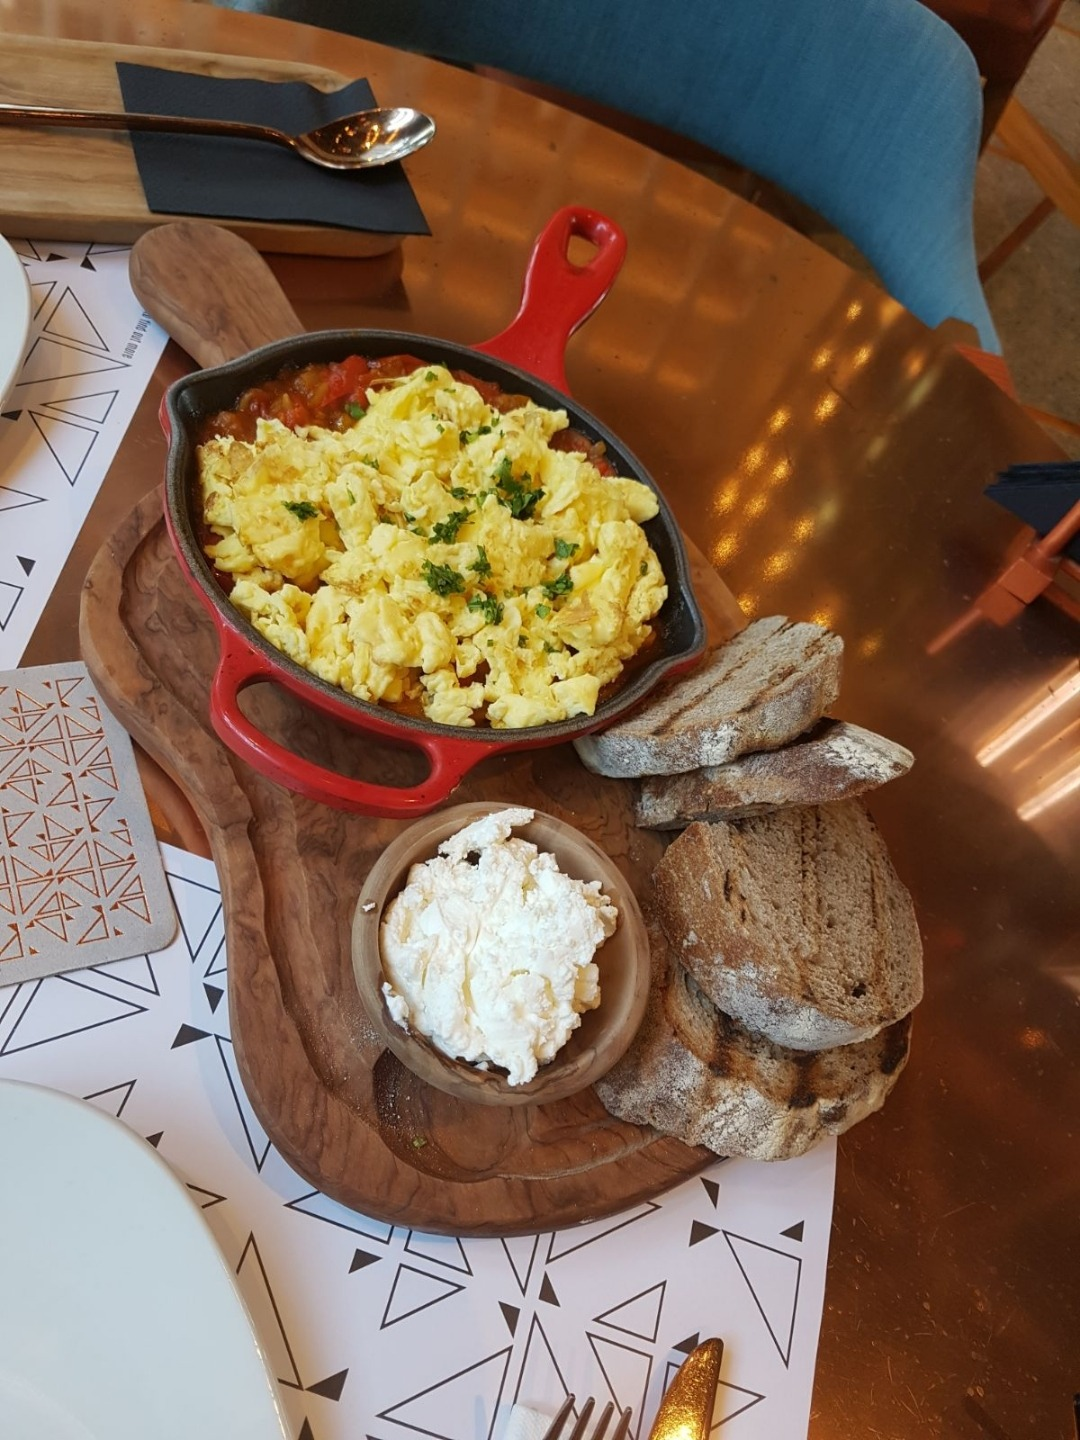 Scrambled eggs - have had better @ Nomad Urban Eatery - Bahrain